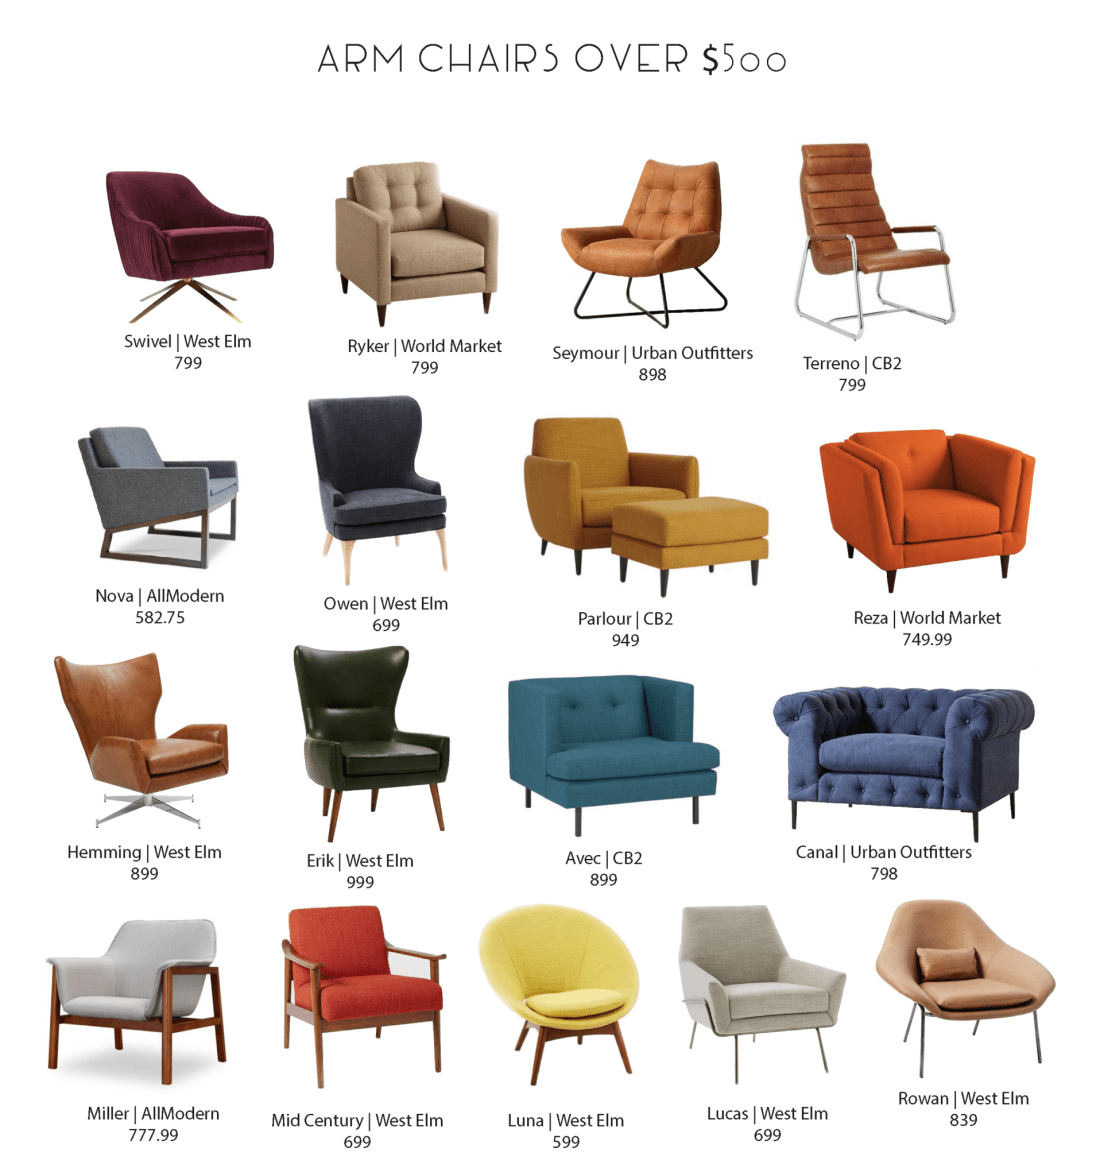 Stylish Mid-Ranged Priced Arm Chairs